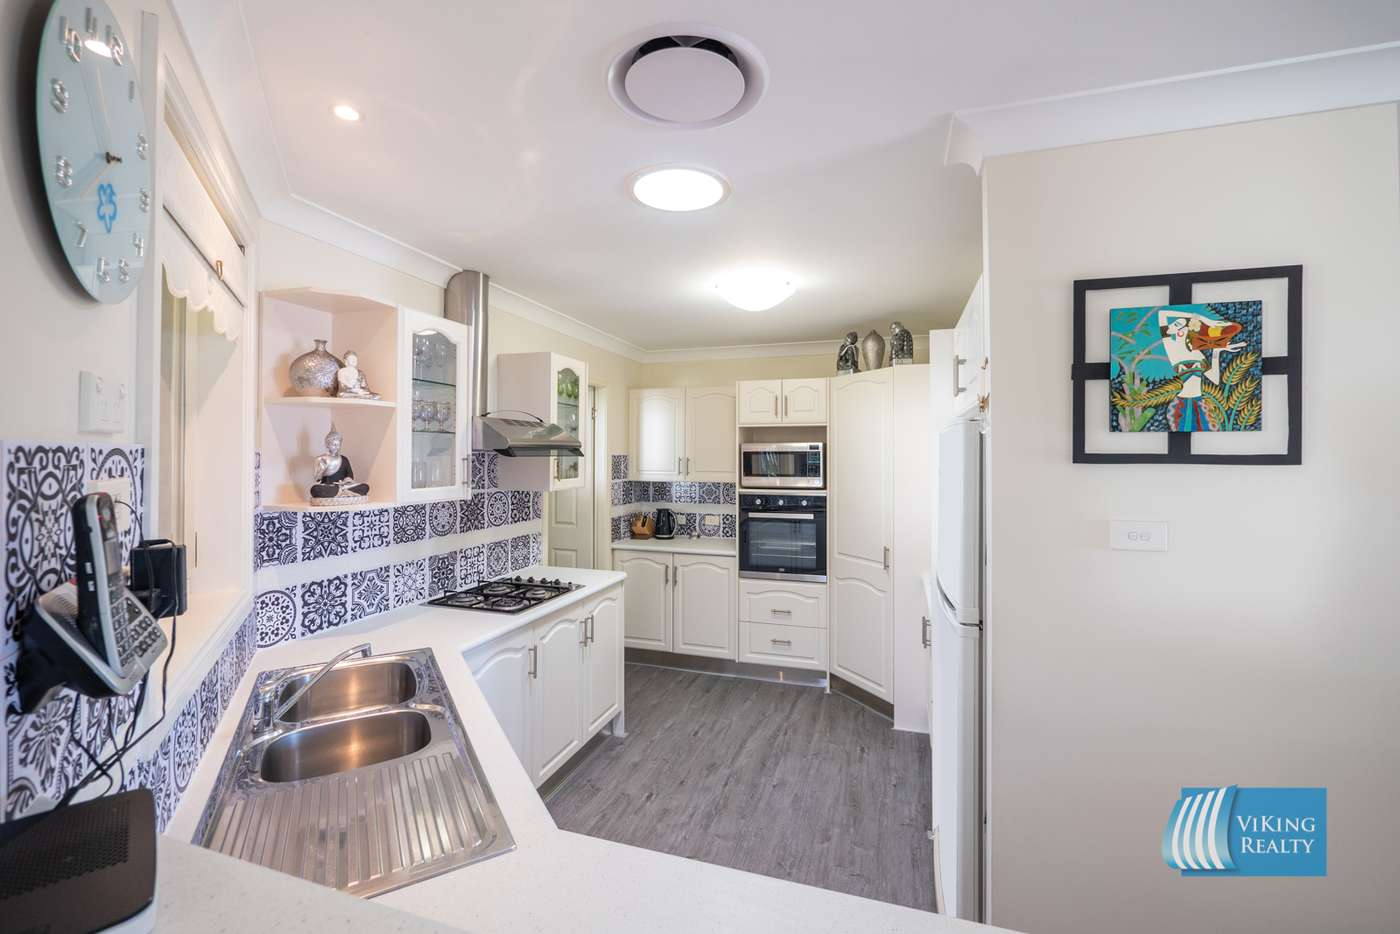 Sixth view of Homely house listing, 2 Jacky Cl, Belmont NSW 2280